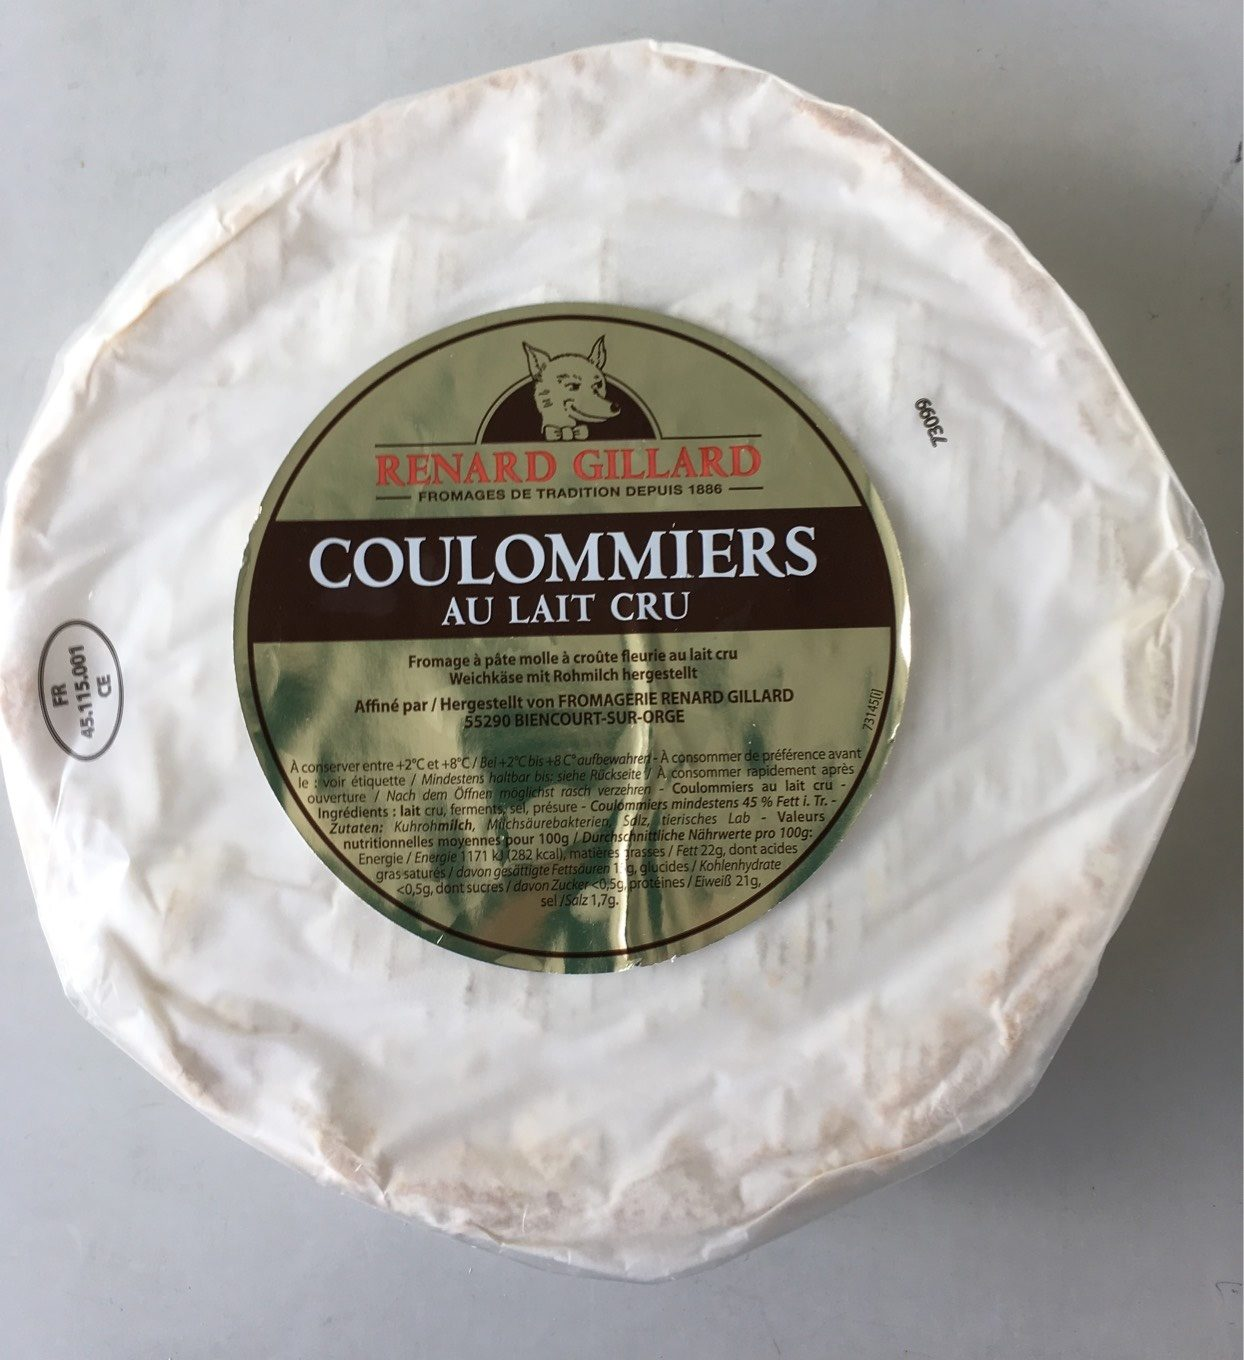 Coulommiers au lait cru - Product